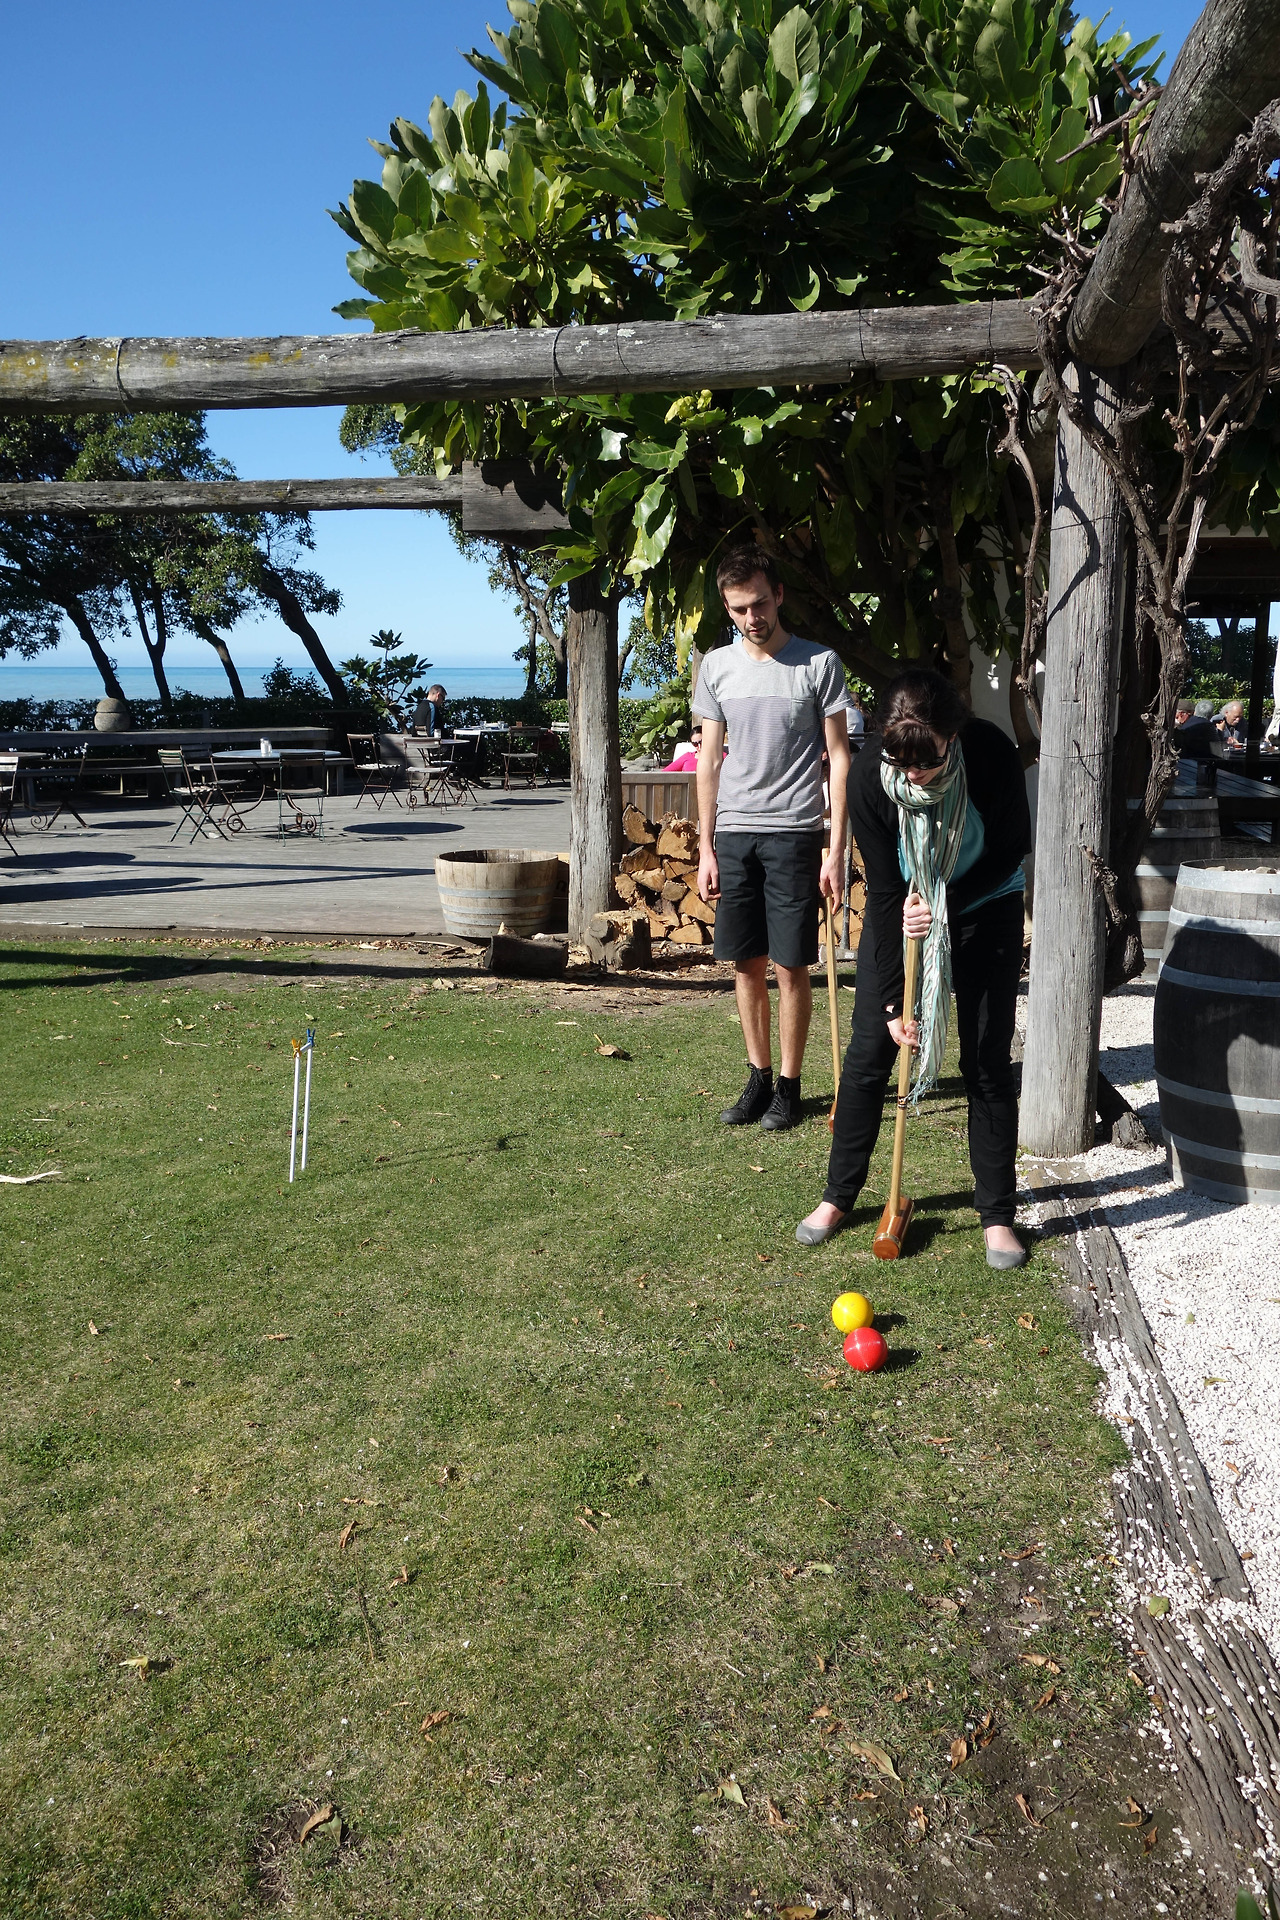 Great day for a spot of croquet on the lawn!!